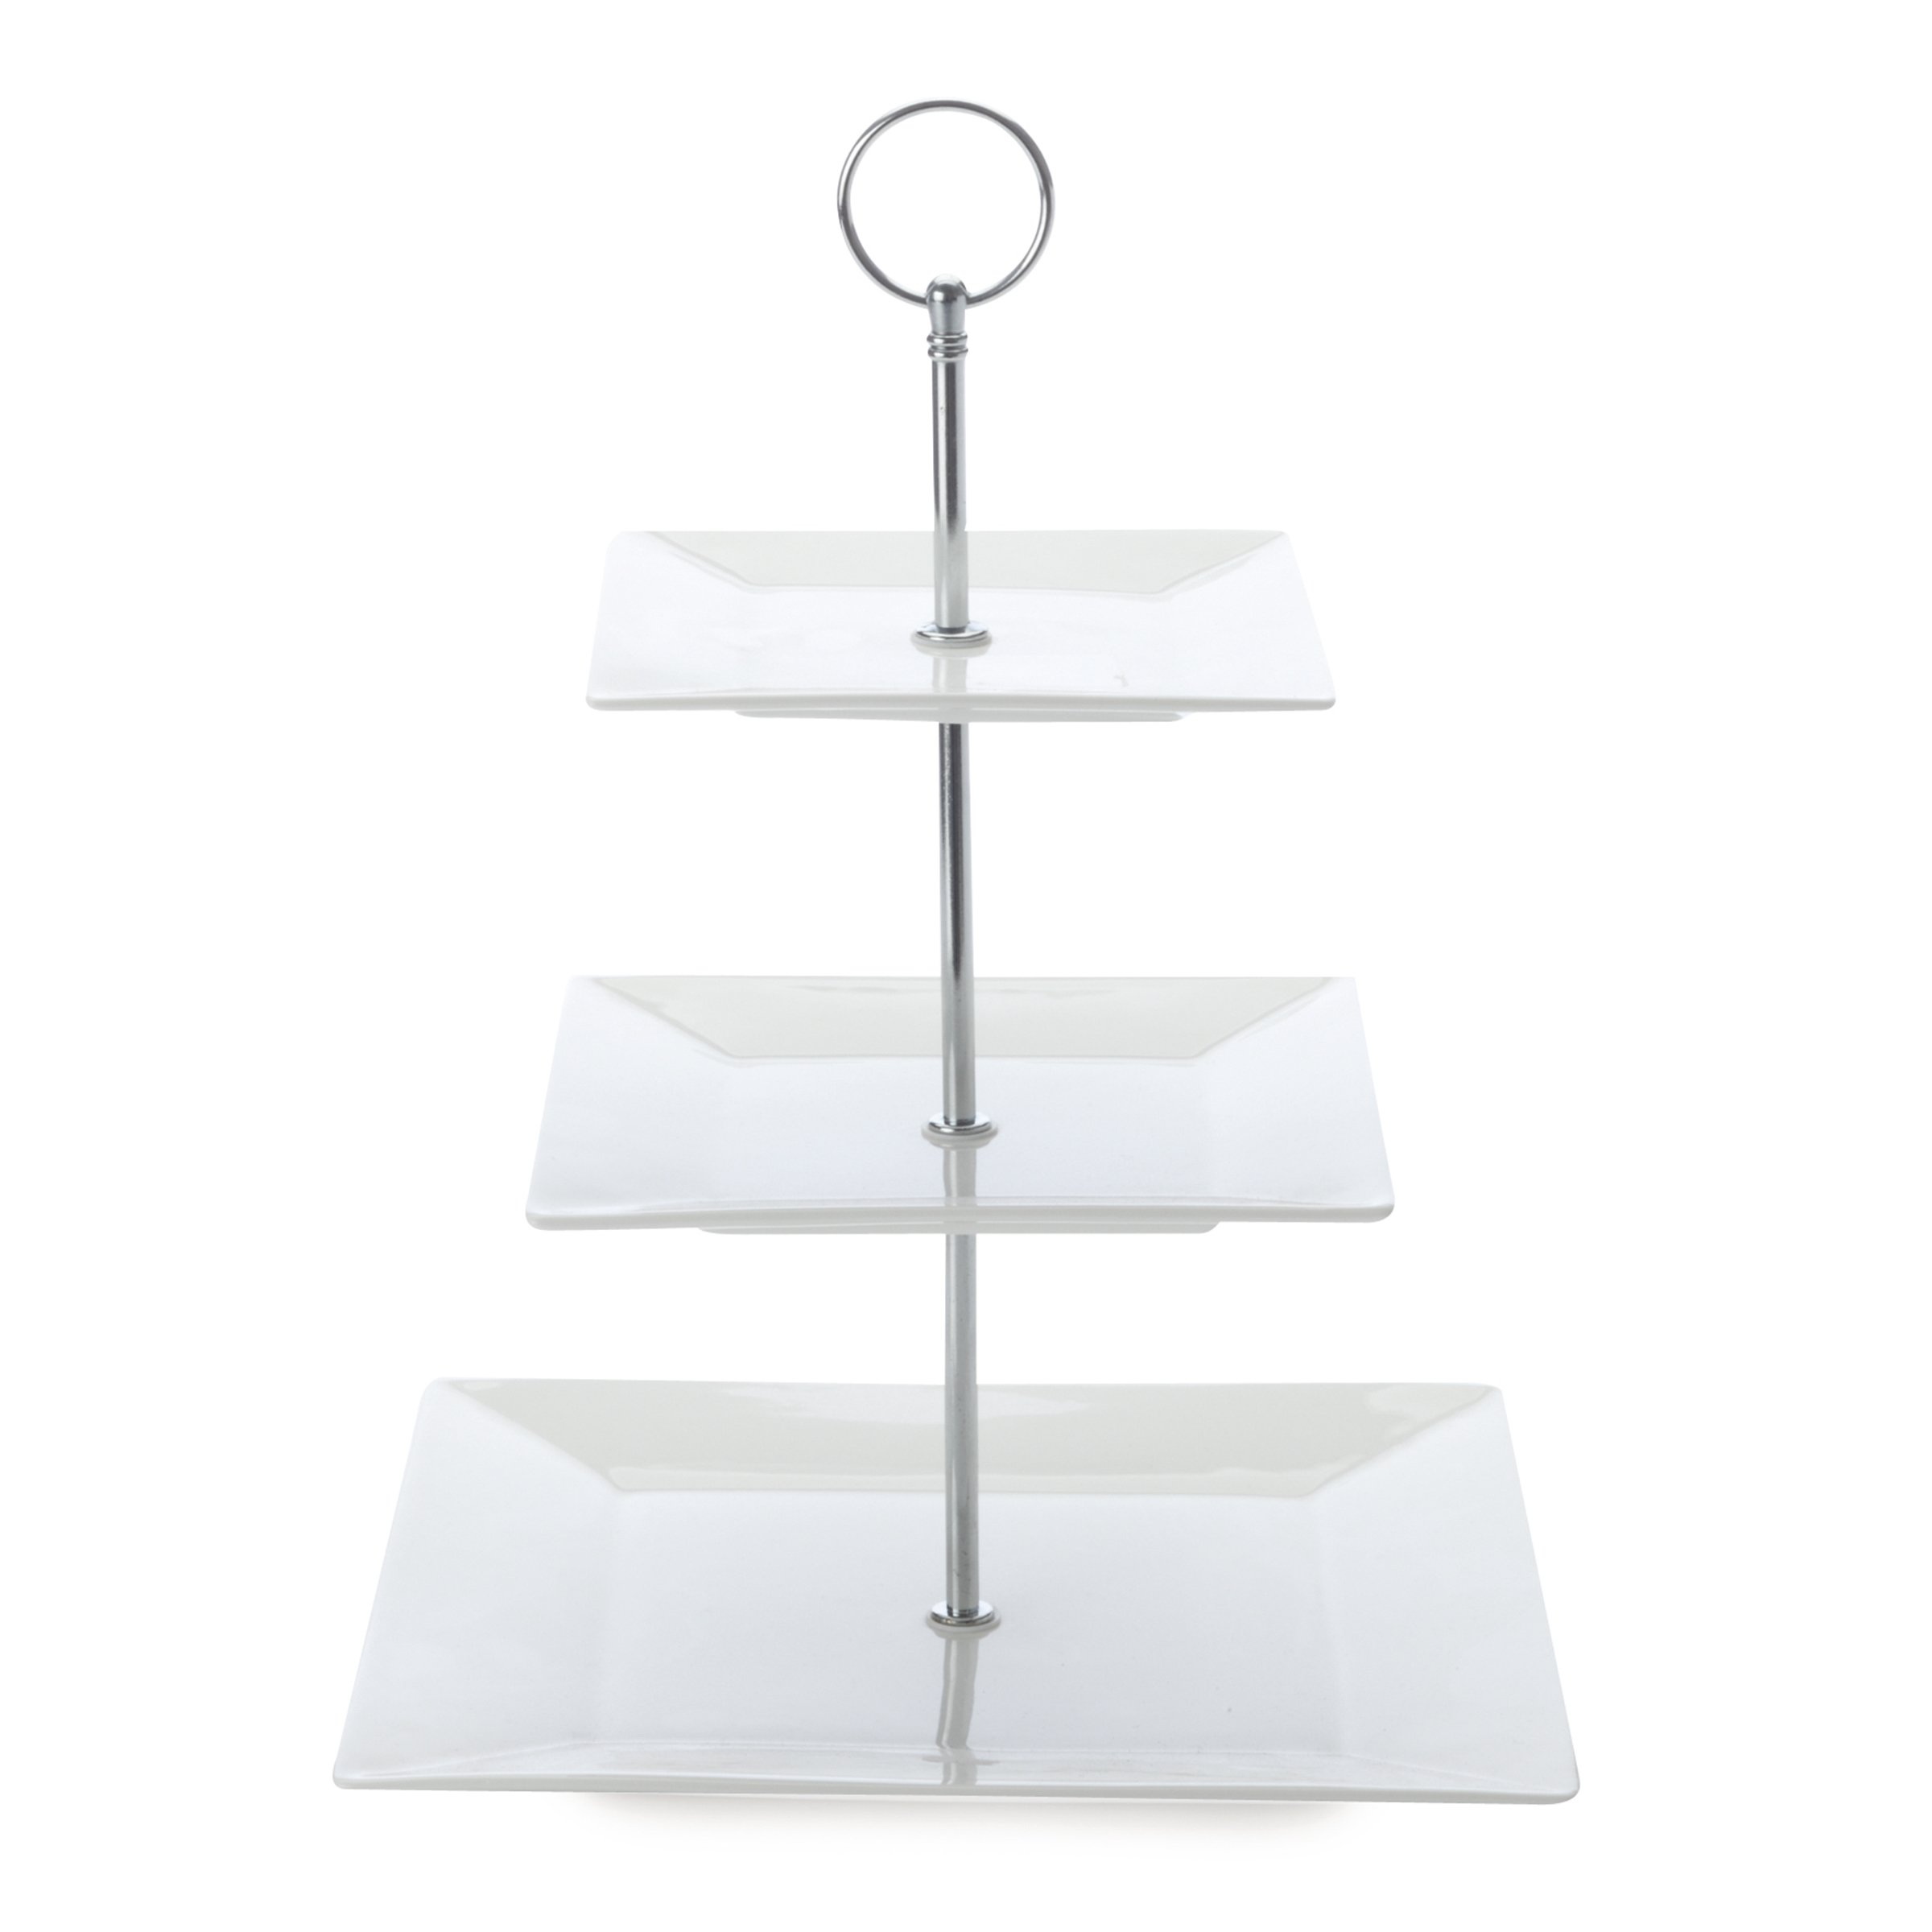 Maxwell and Williams Designer Homewares RP99003 Basics Cake Stand, One size